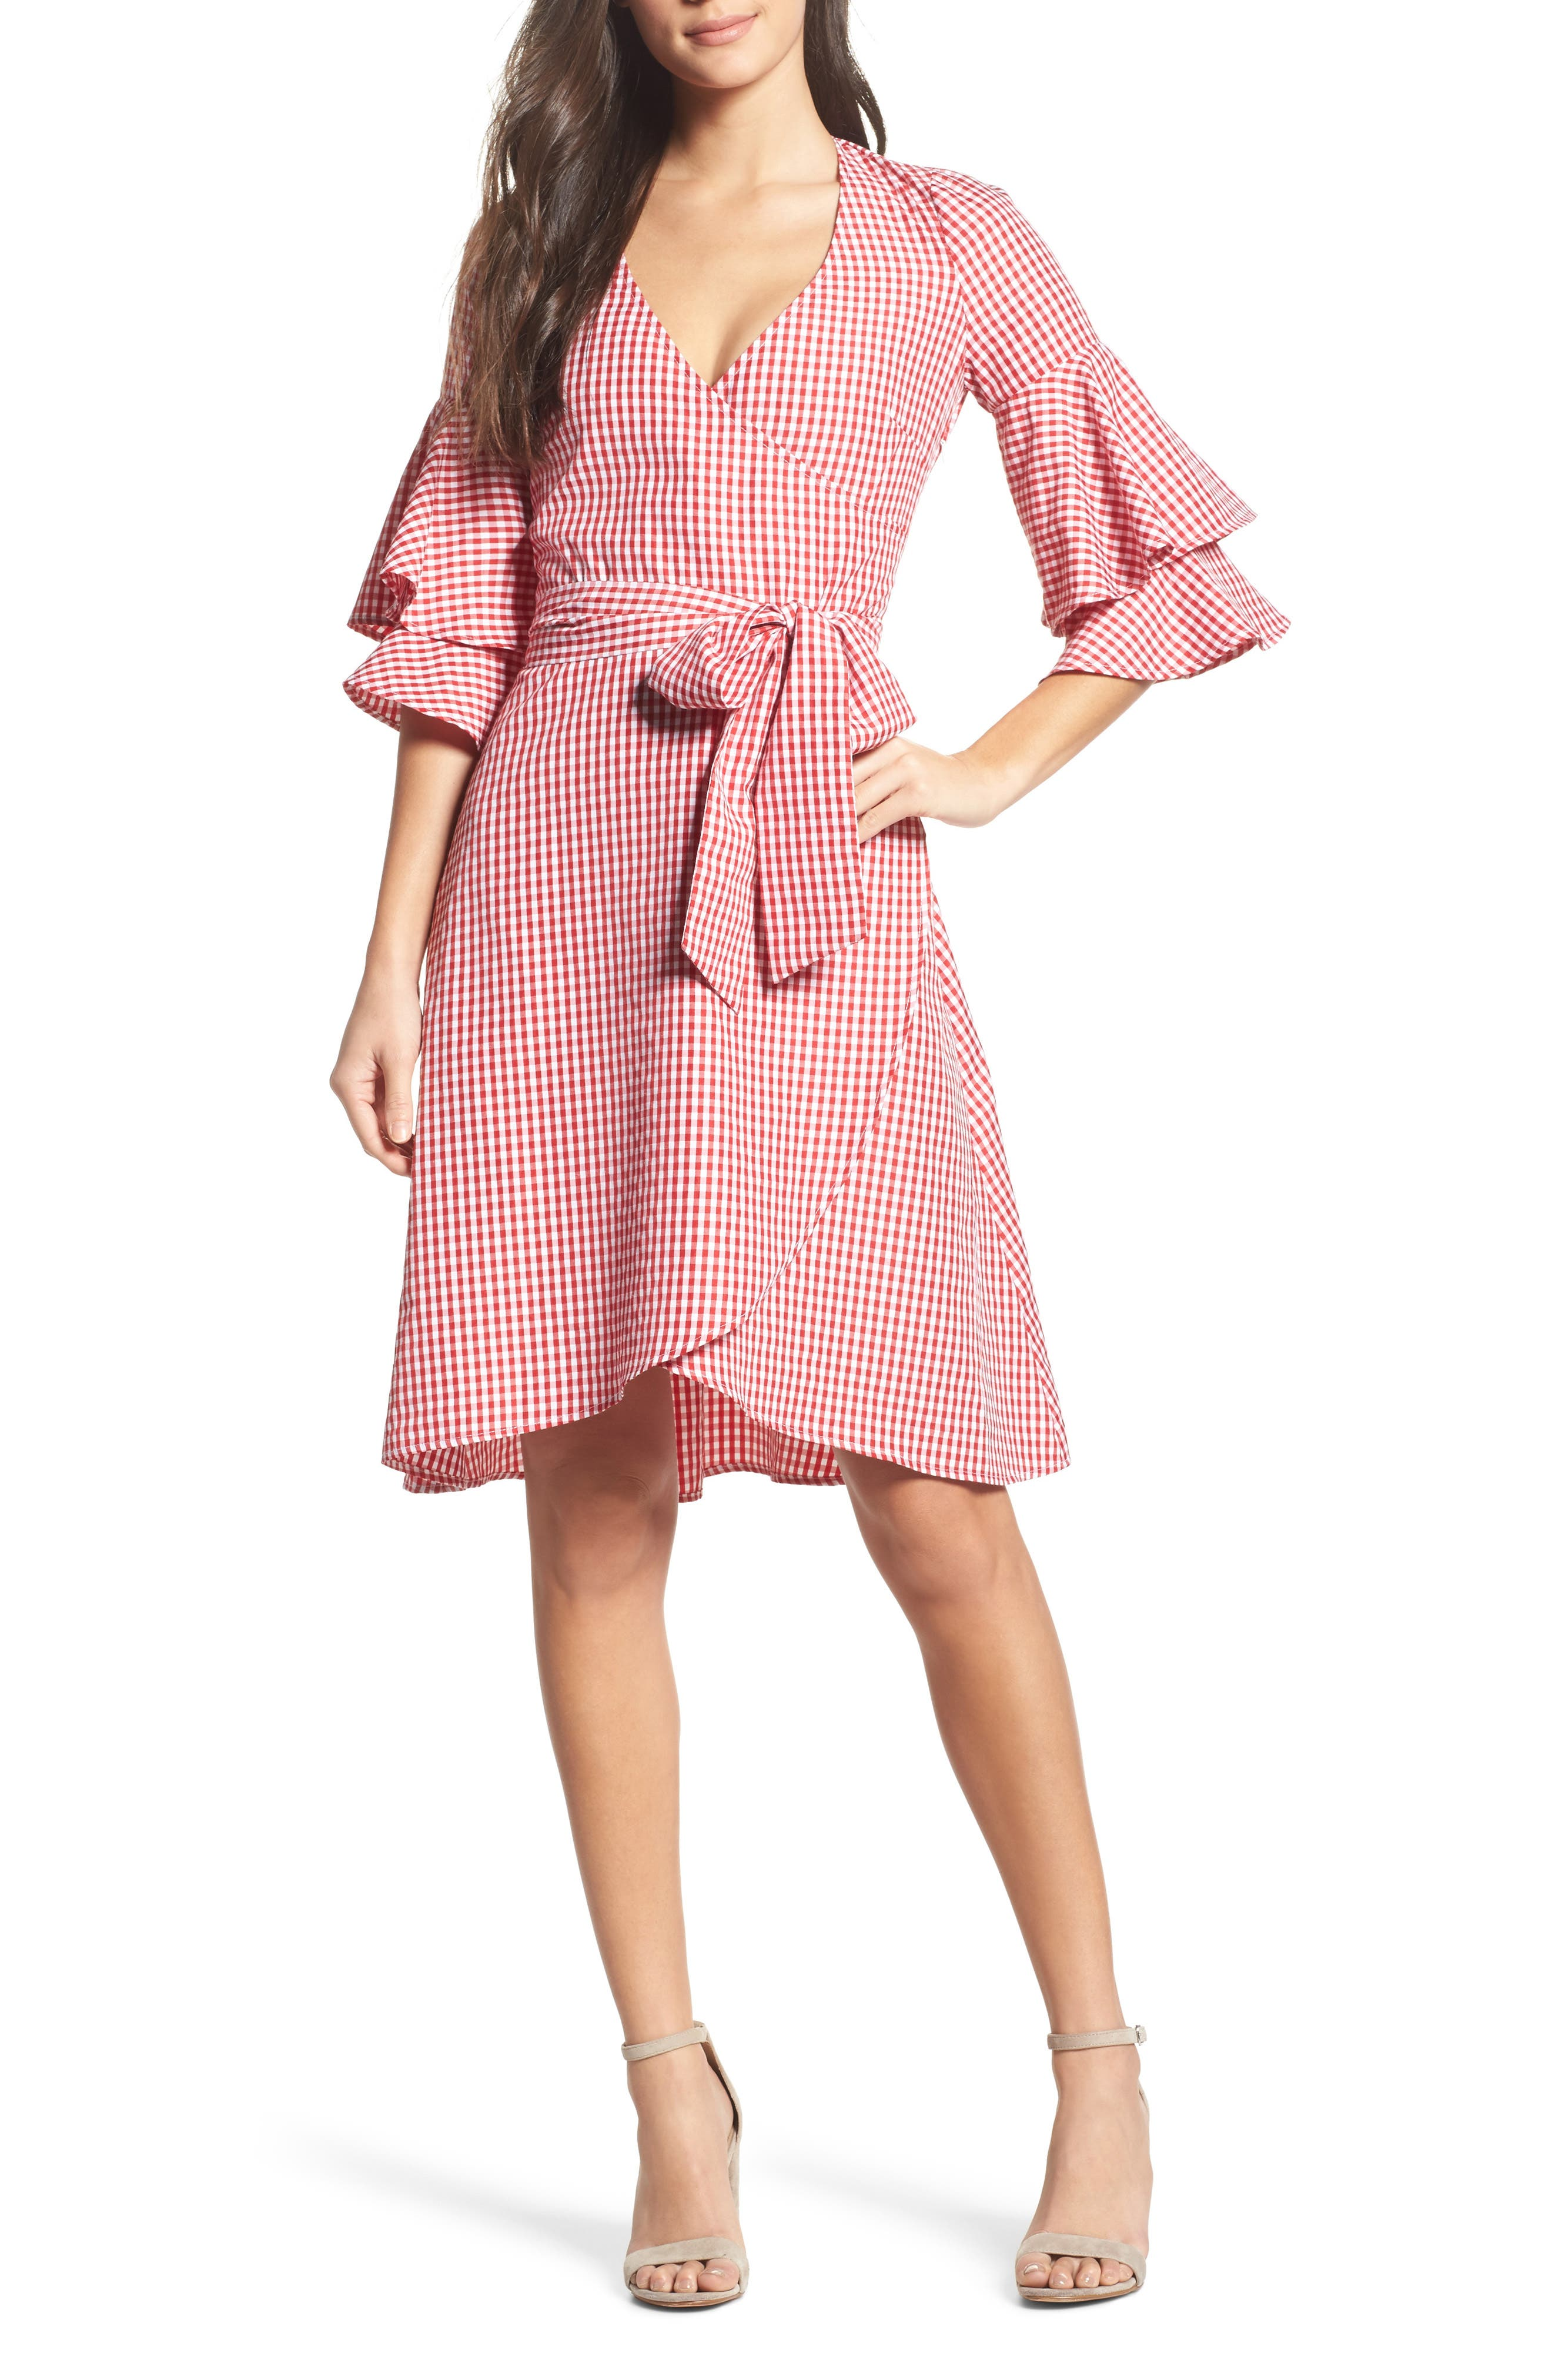 Ruffle Wrap Dress,                             Main thumbnail 1, color,                             Red/ White Gingham